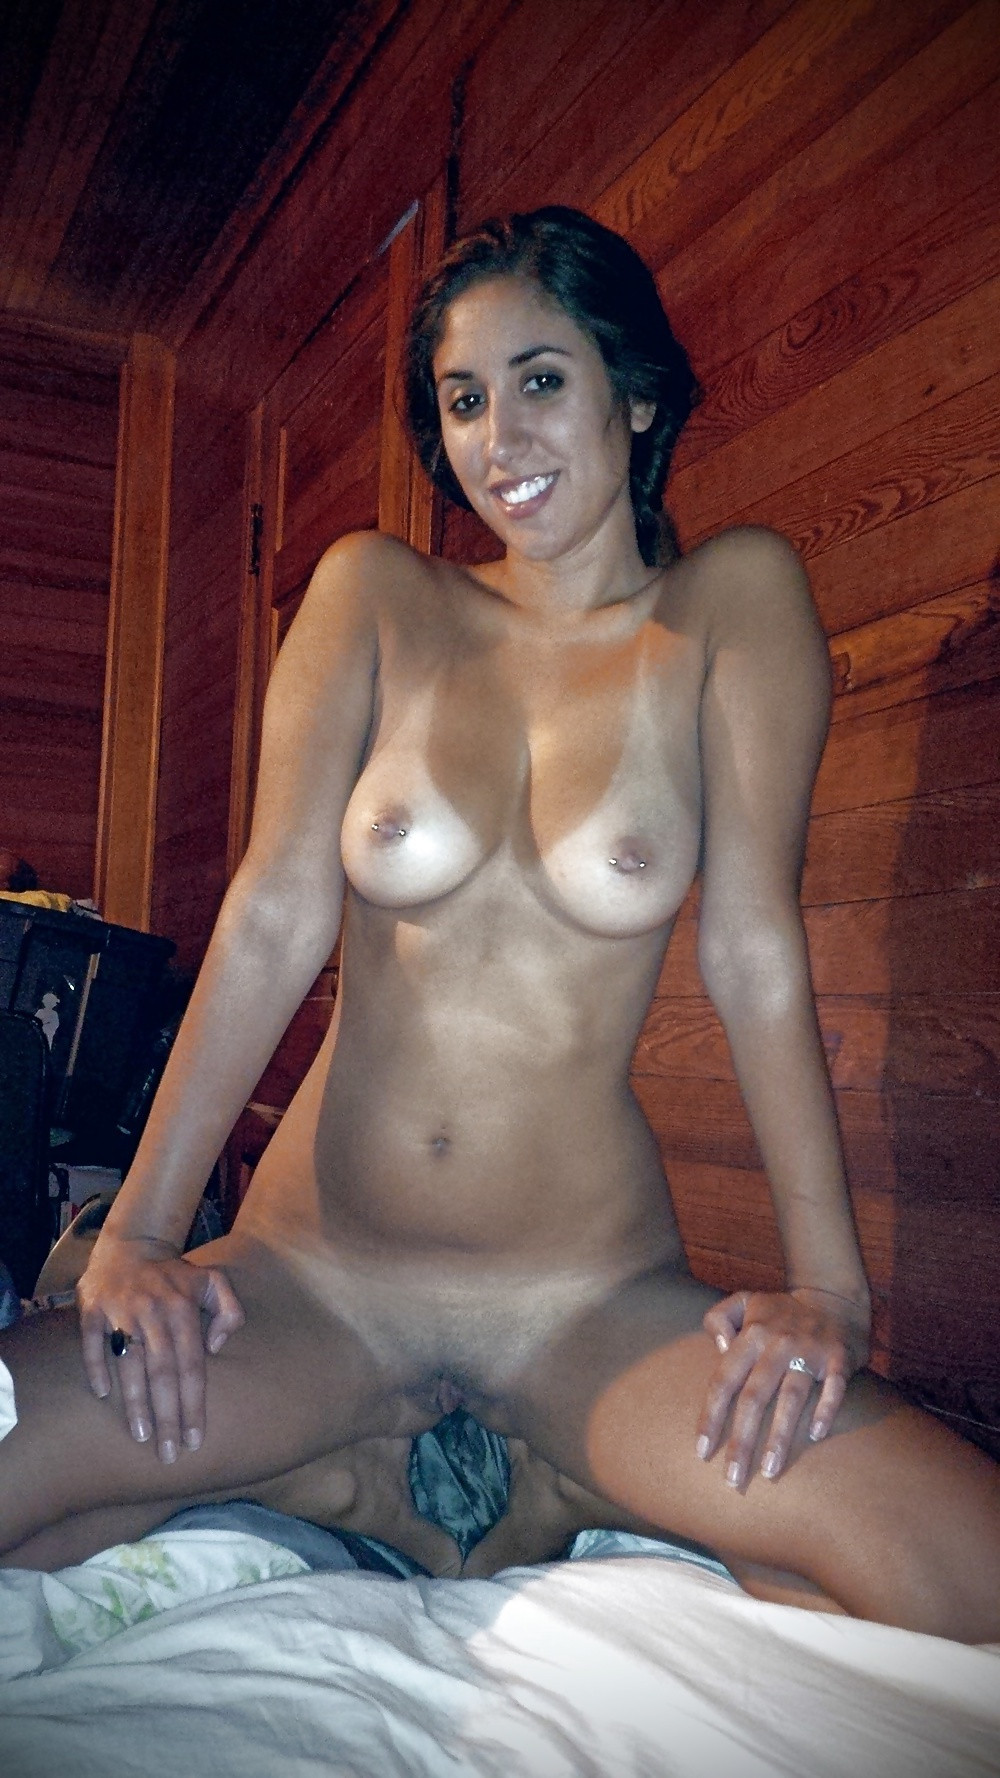 Cabin in the woods nude